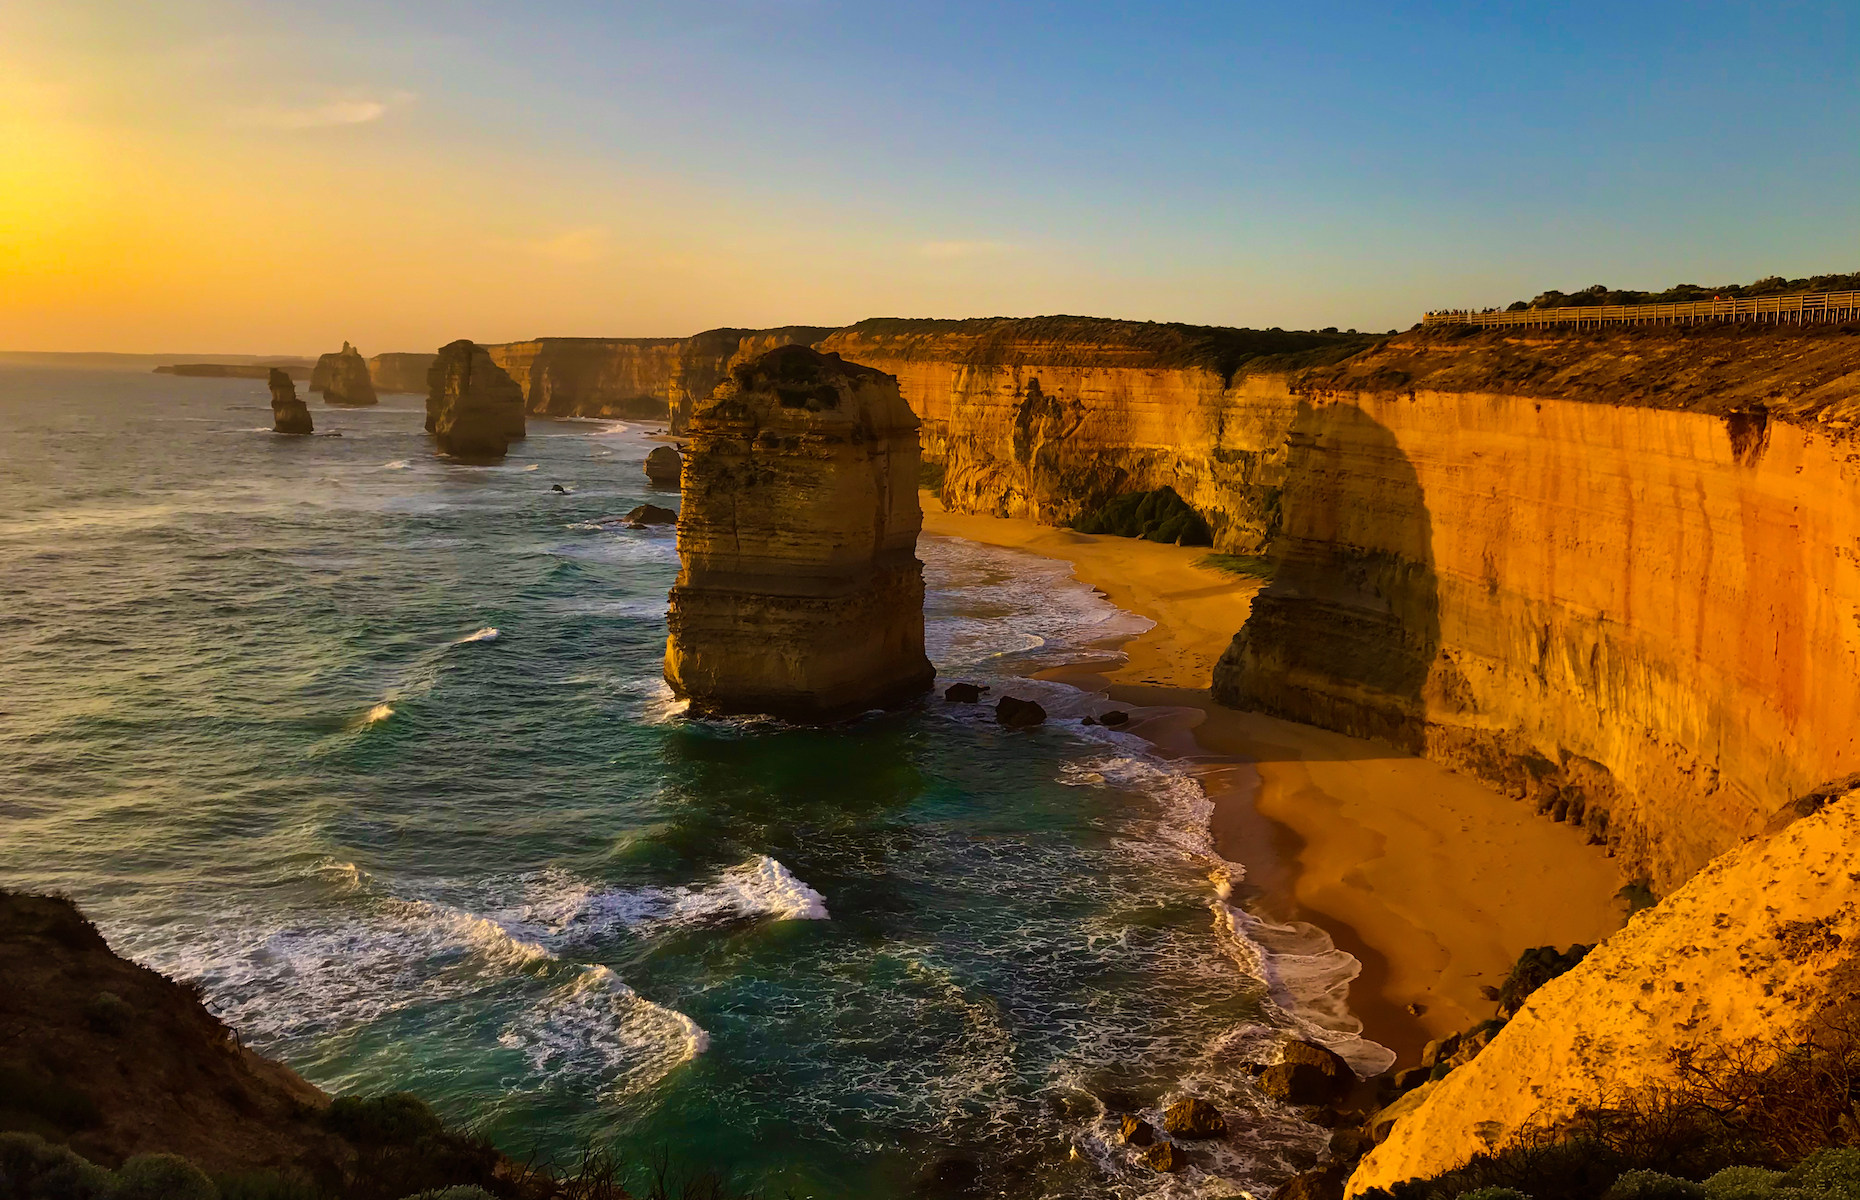 "Slide 5 of 21: In Victoria, these majestic limestone stacks, dubbed the Twelve Apostles (formerly ""the Sow and Piglets""), are a highlight of the Great Ocean Road. Though only eight remain today, the rock formations stand tall amidst crashing waves—a breathtaking sight from the cliff tops."